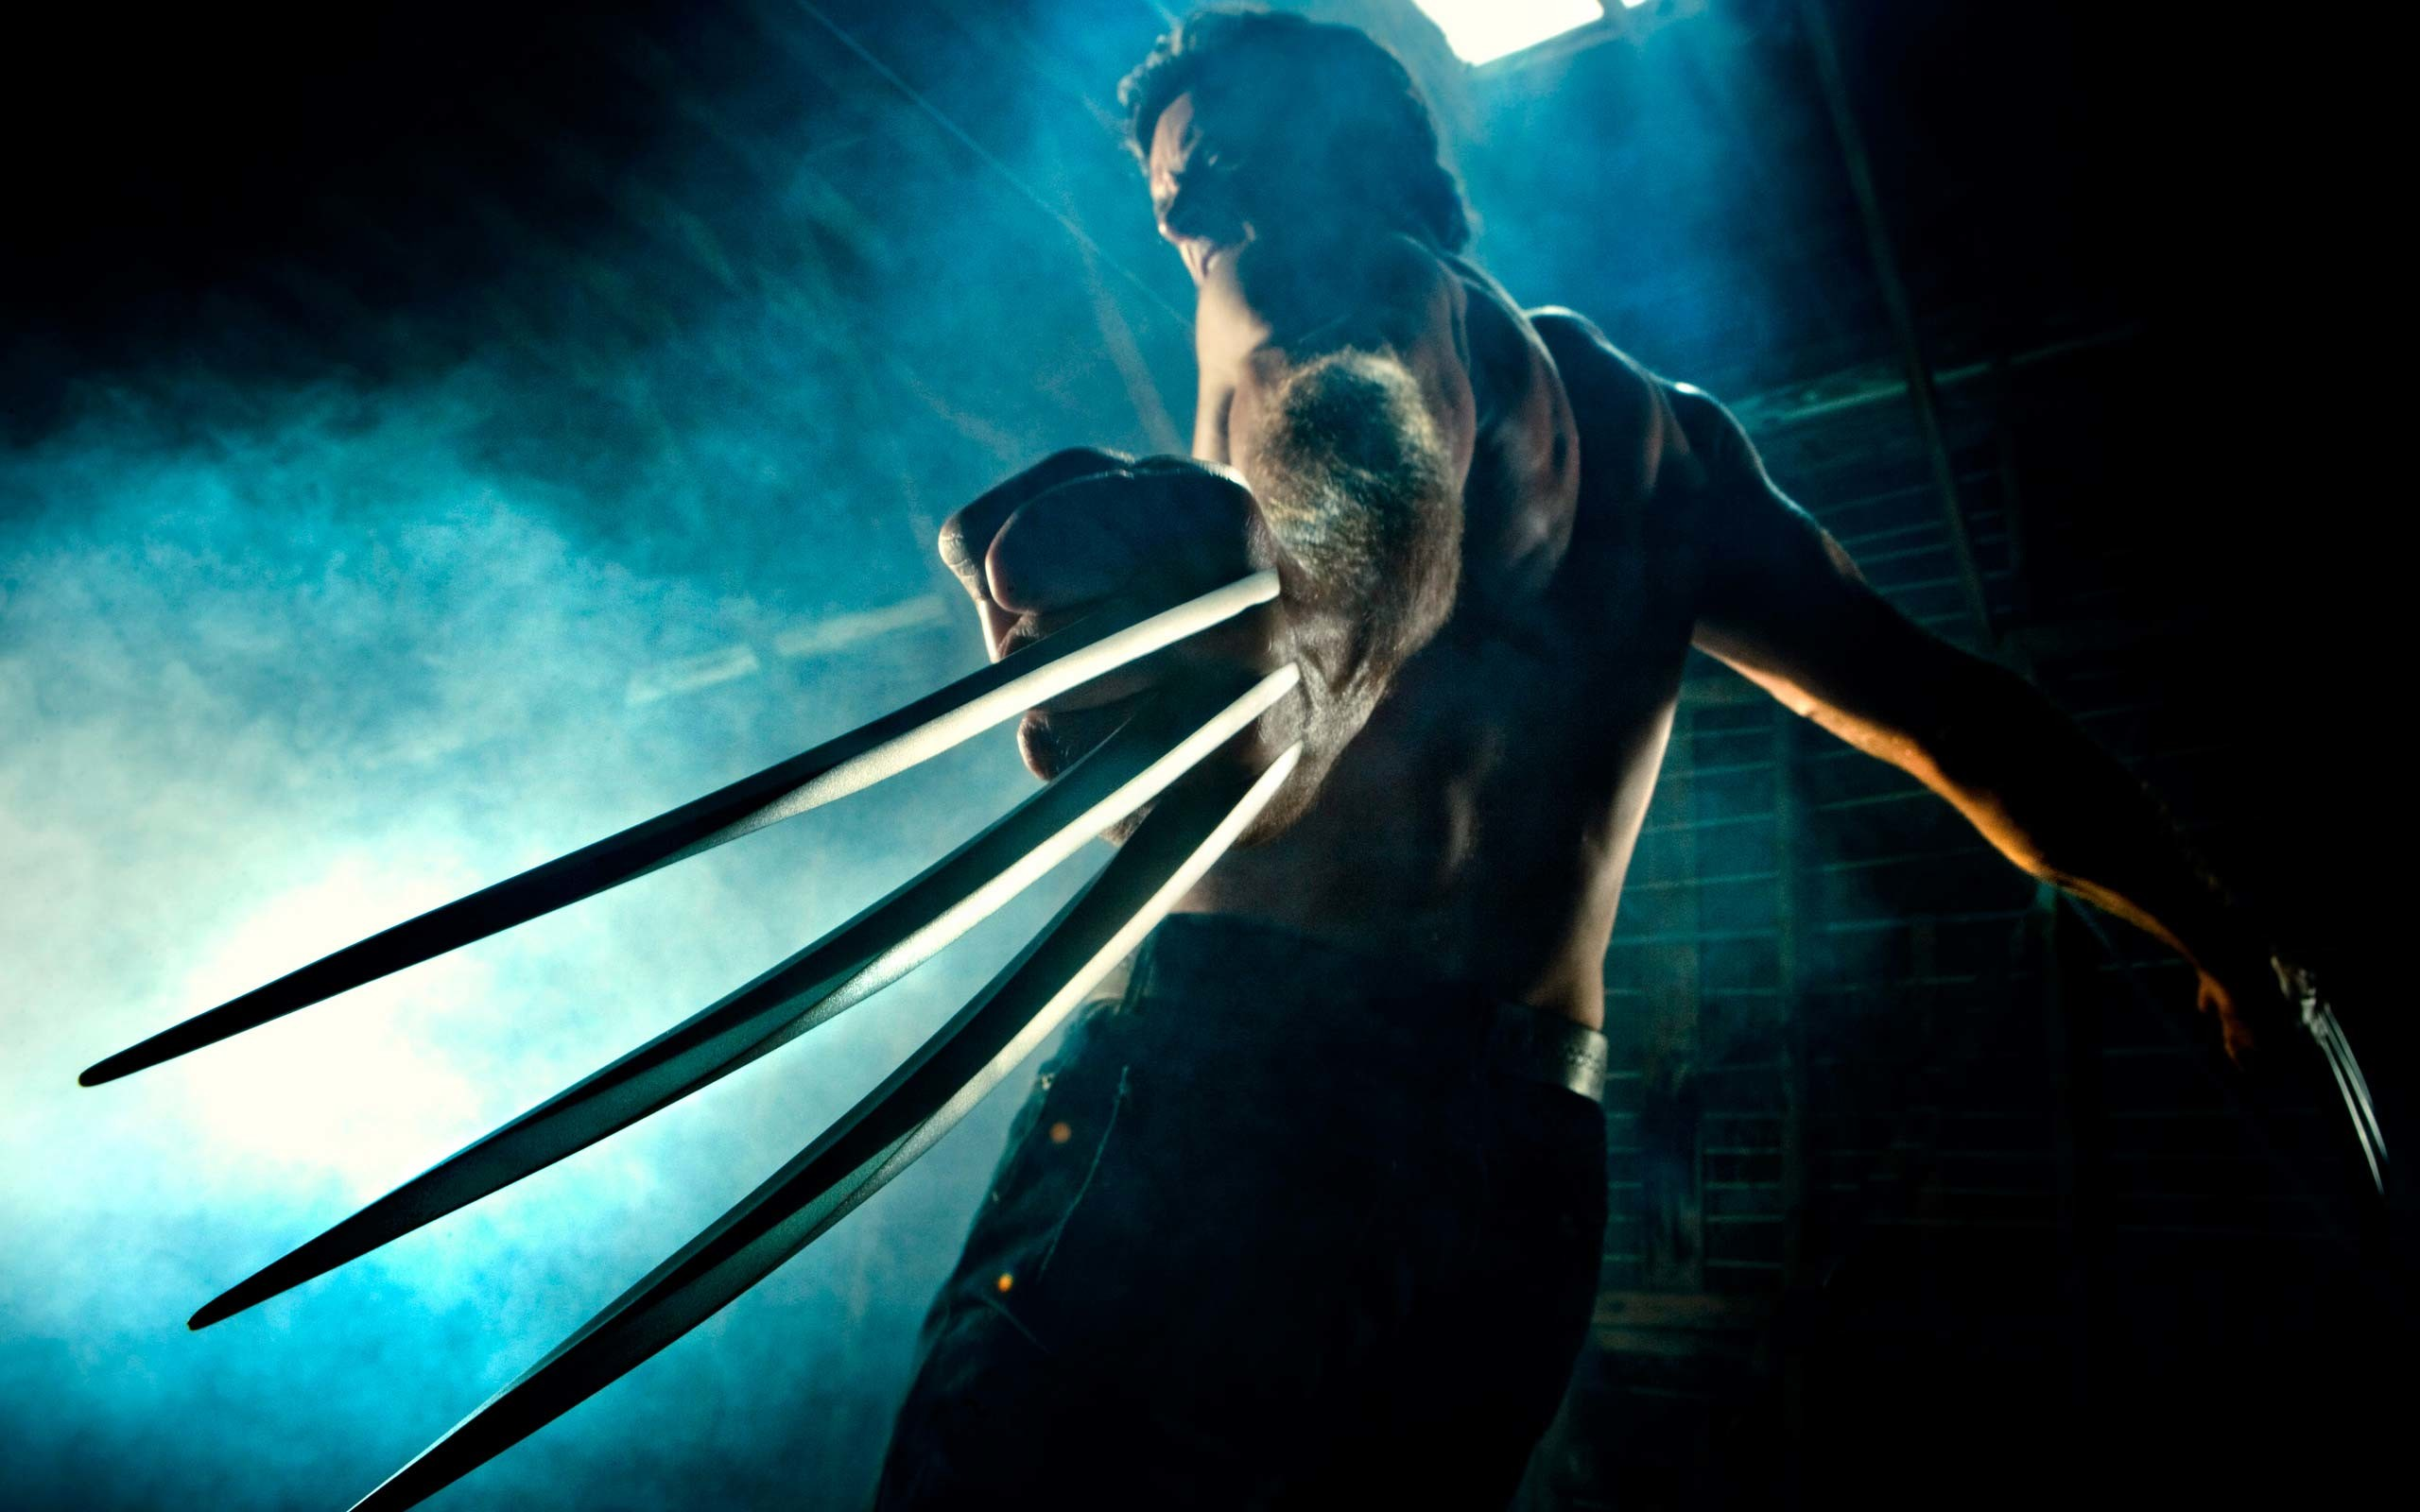 wolverine-steel-claws-x-men-hd-wallpapers-collection-